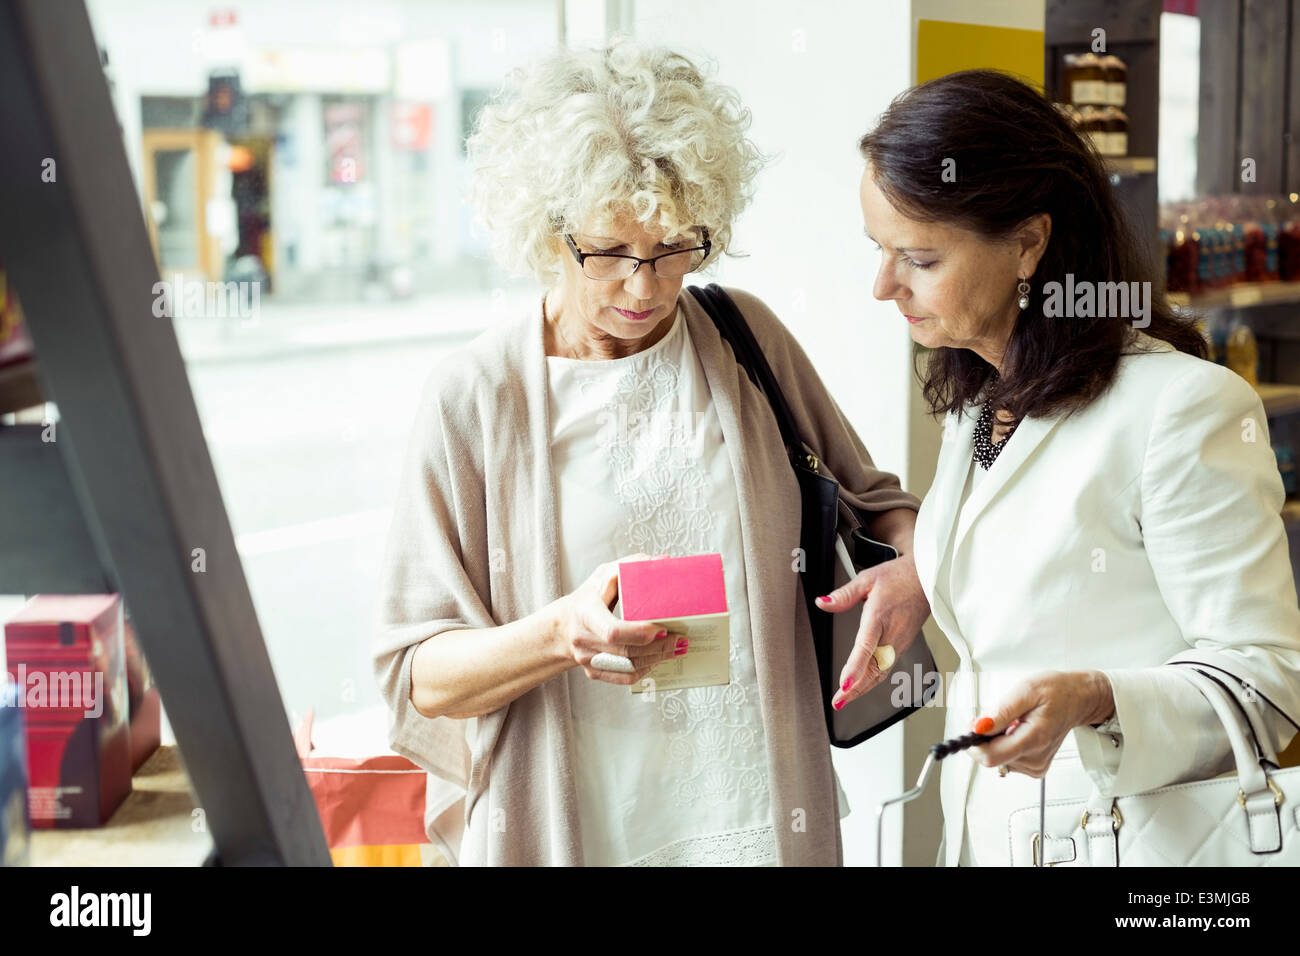 Senior women reading label on product in store - Stock Image